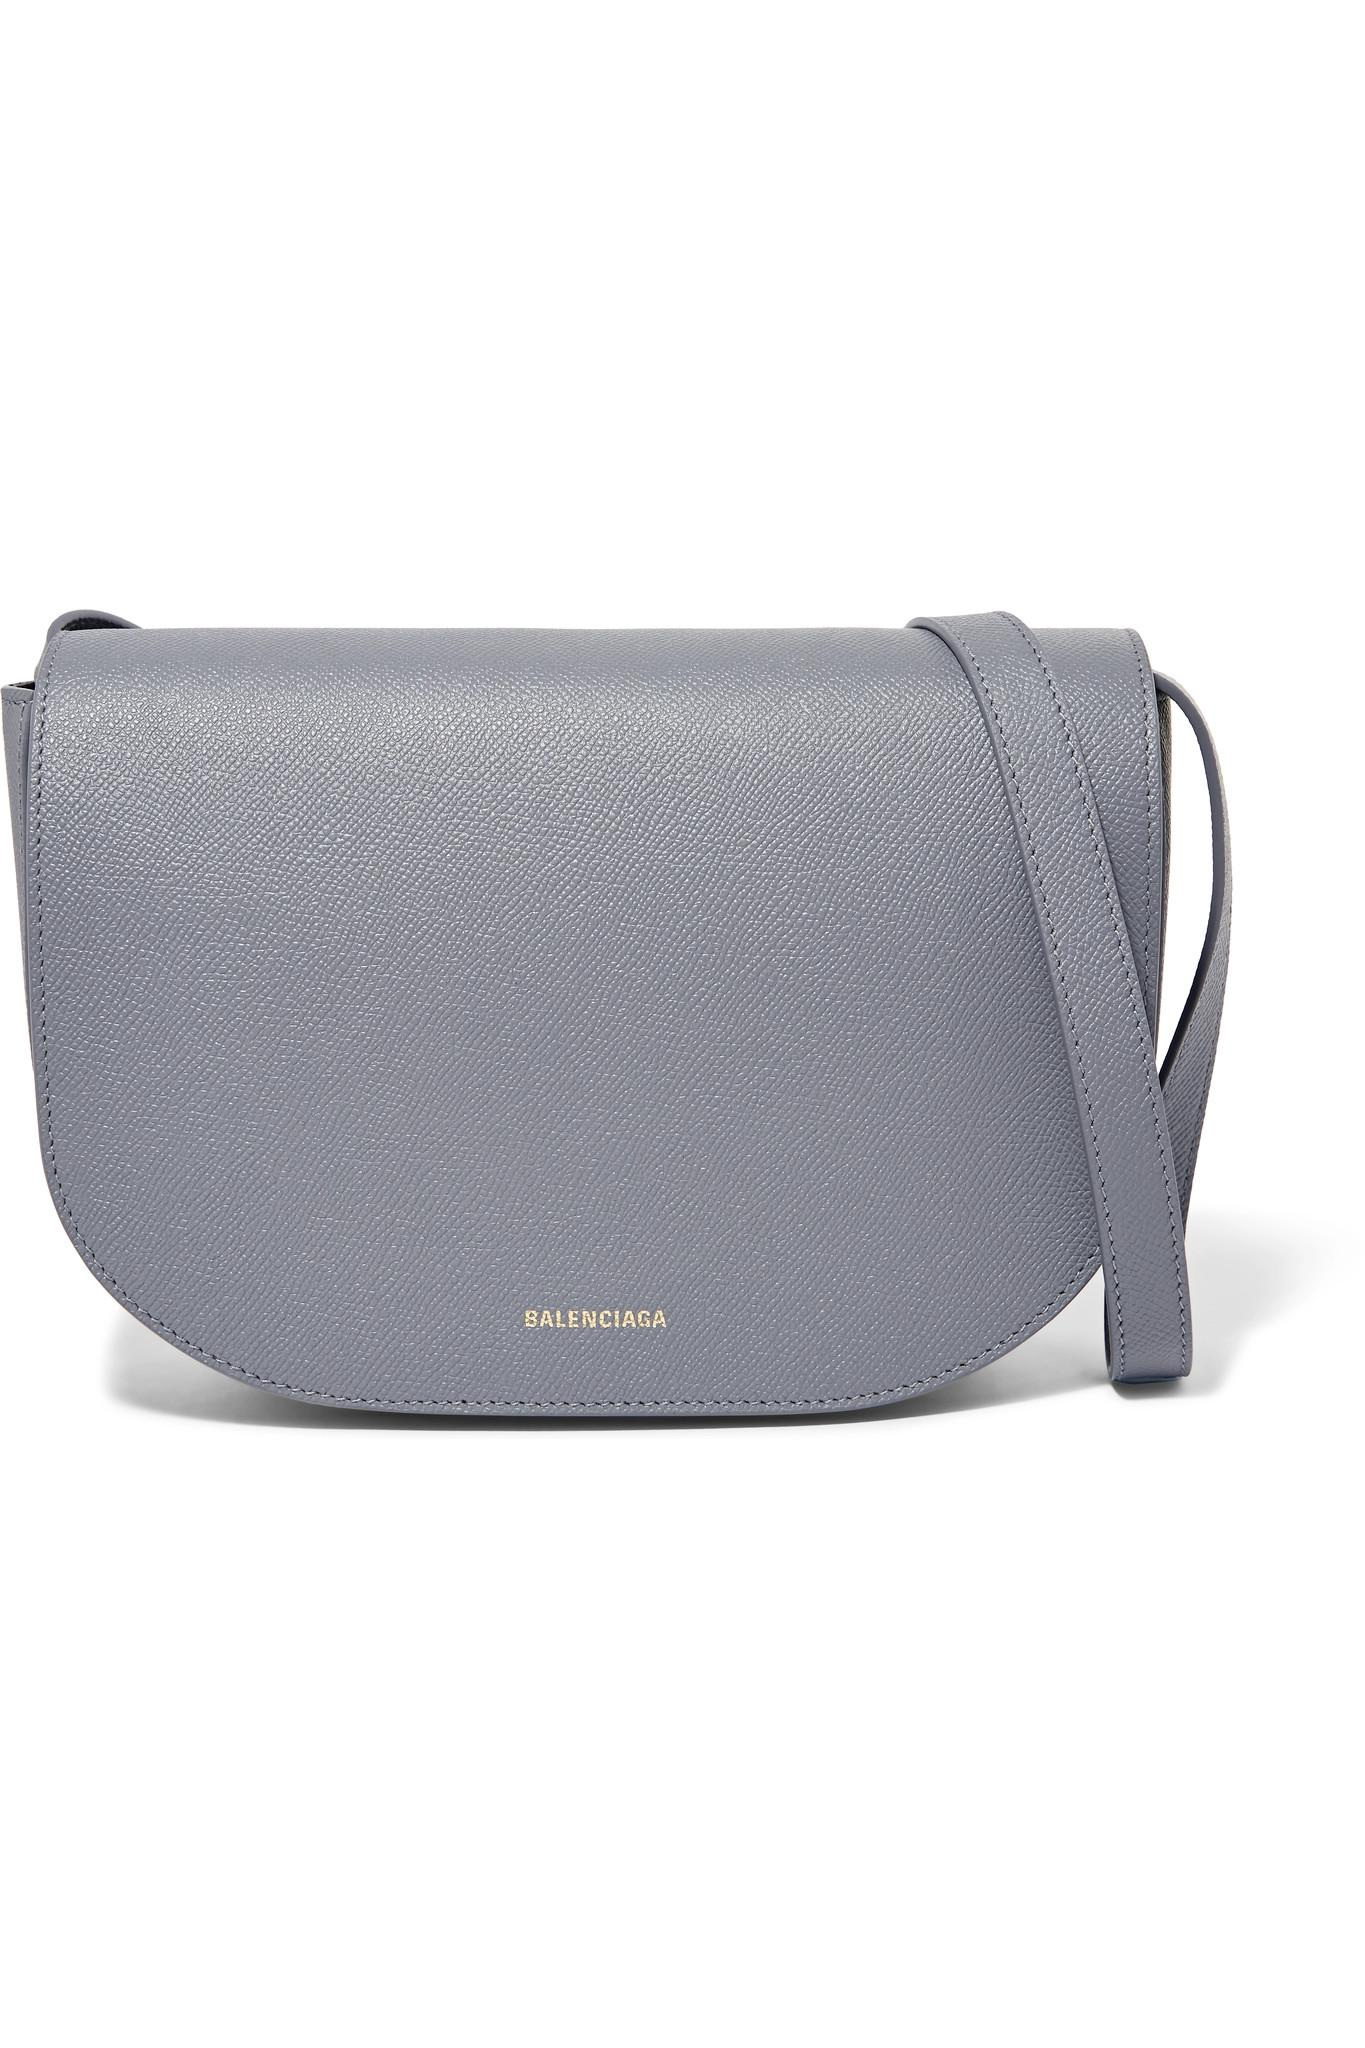 297ddc7c9e Balenciaga Ville S Aj Printed Textured-leather Shoulder Bag in Gray ...